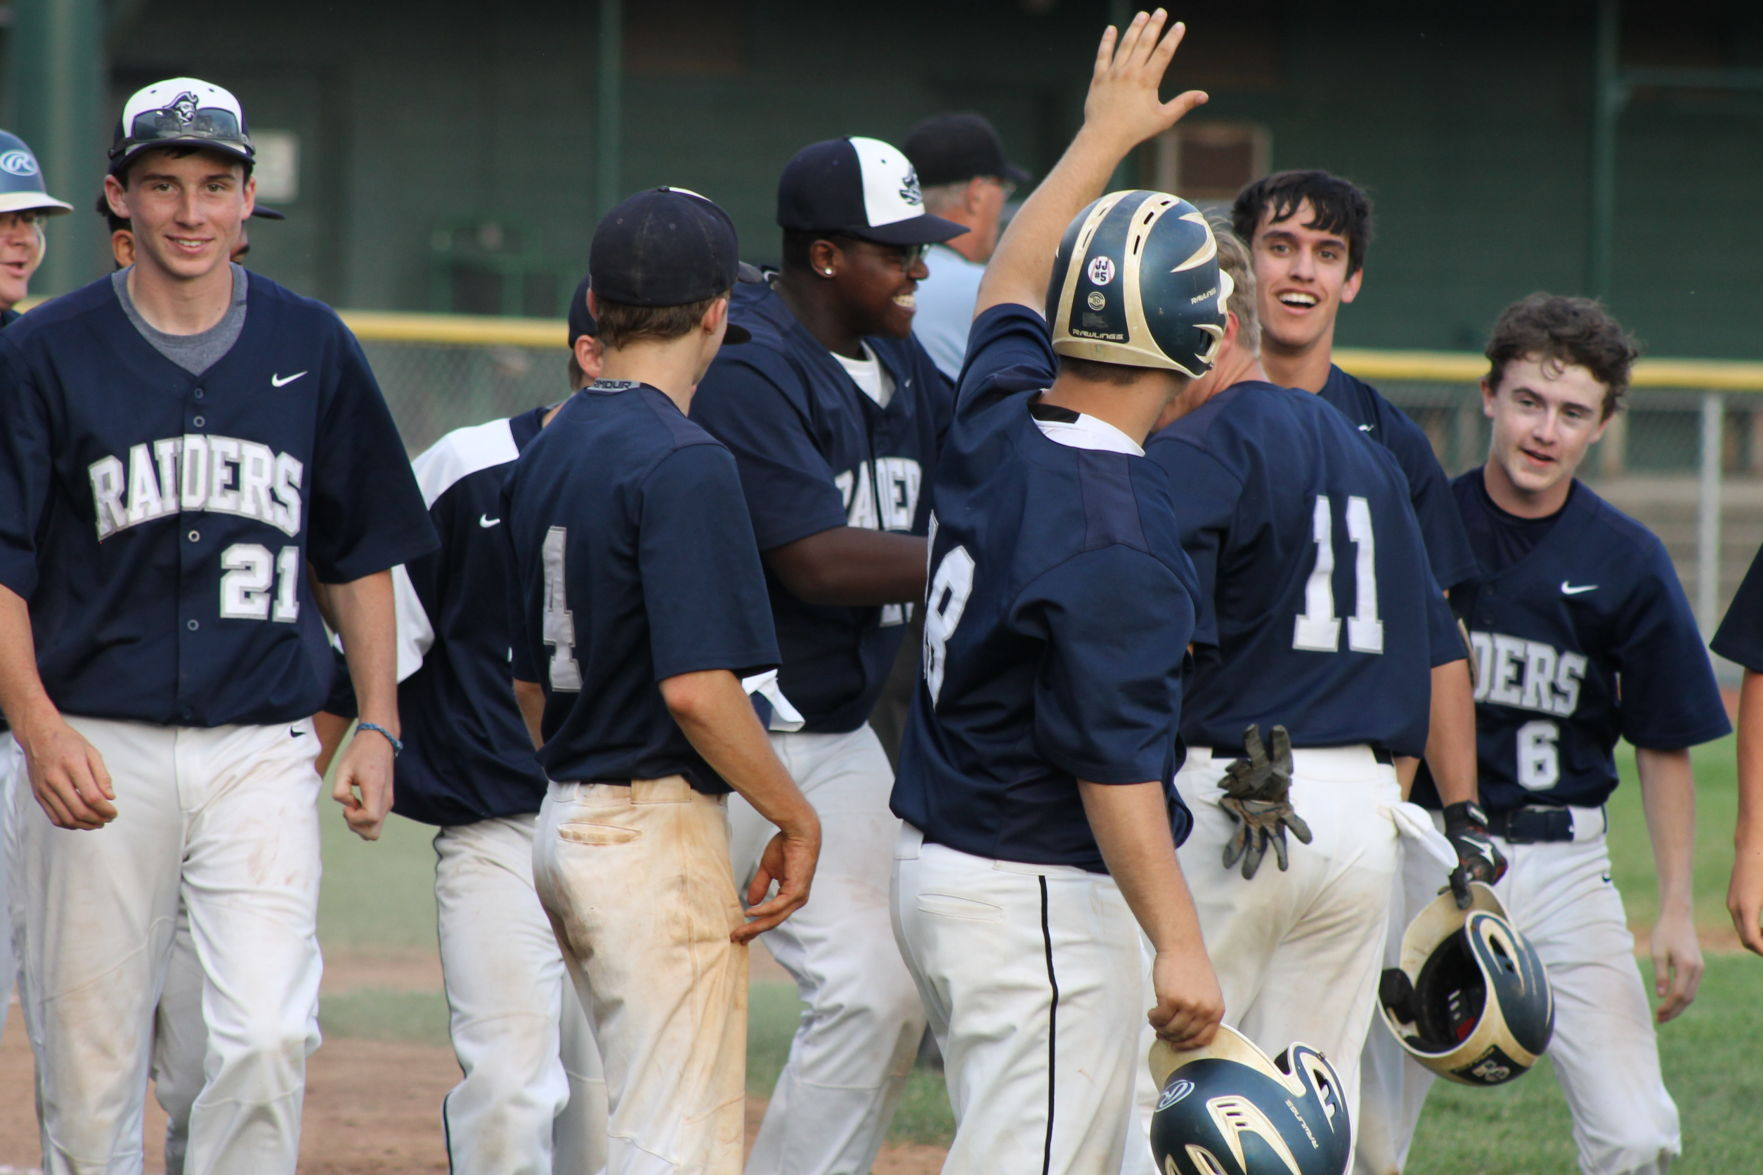 Raiders baseball faces Chatham tonight for regional title